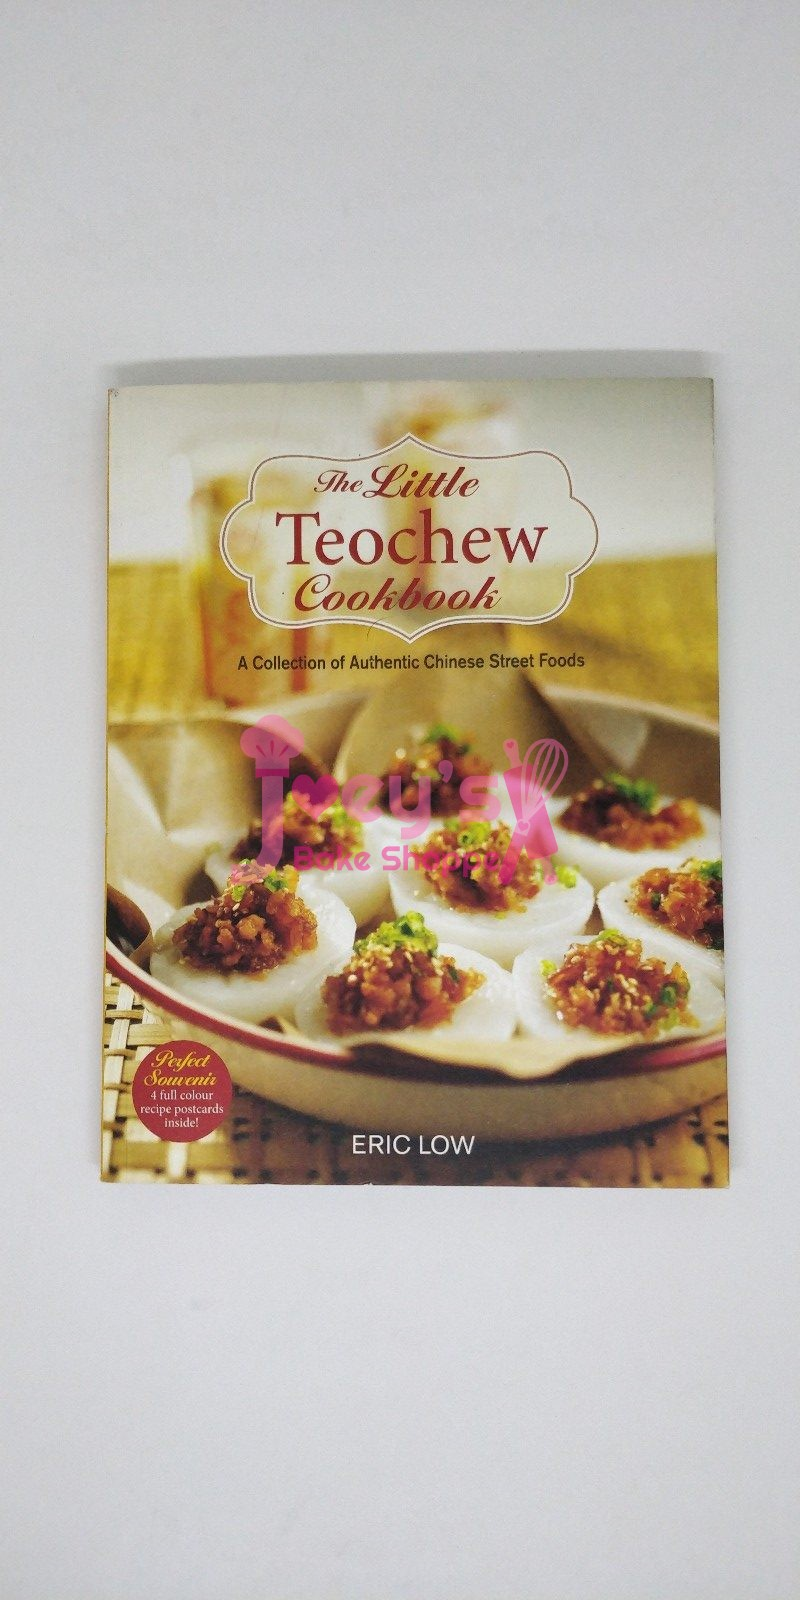 The little teochew recipes book joeys bake shoppe forumfinder Choice Image